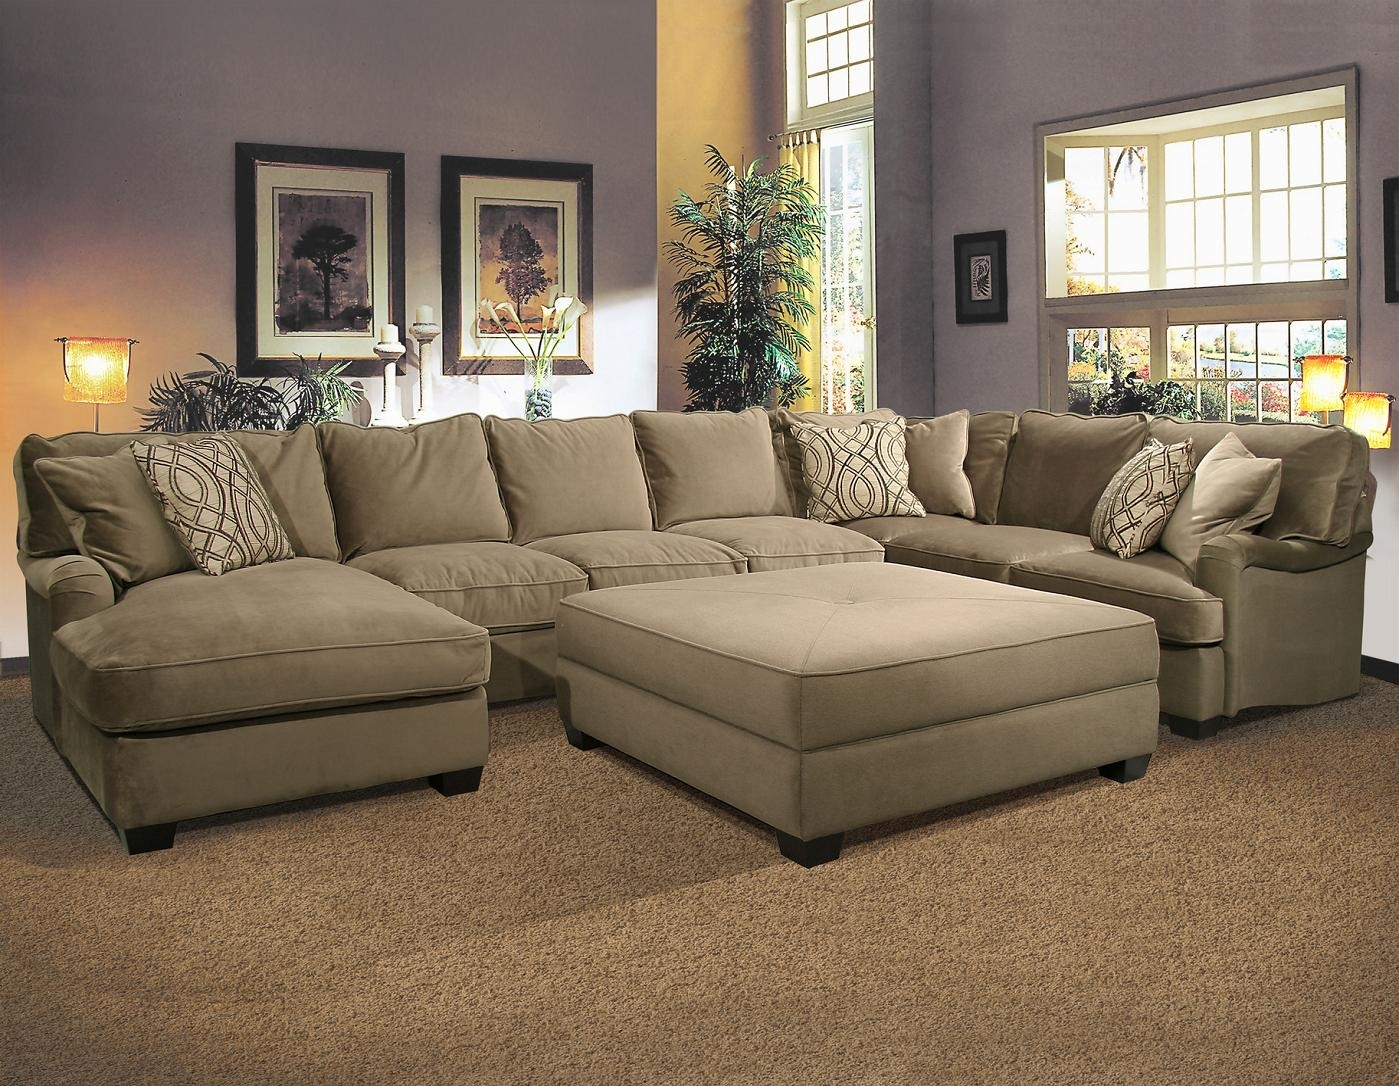 Bostonian Sectional Sofafairmont Seating | Home | Pinterest for Sectional Couches With Large Ottoman (Image 6 of 15)